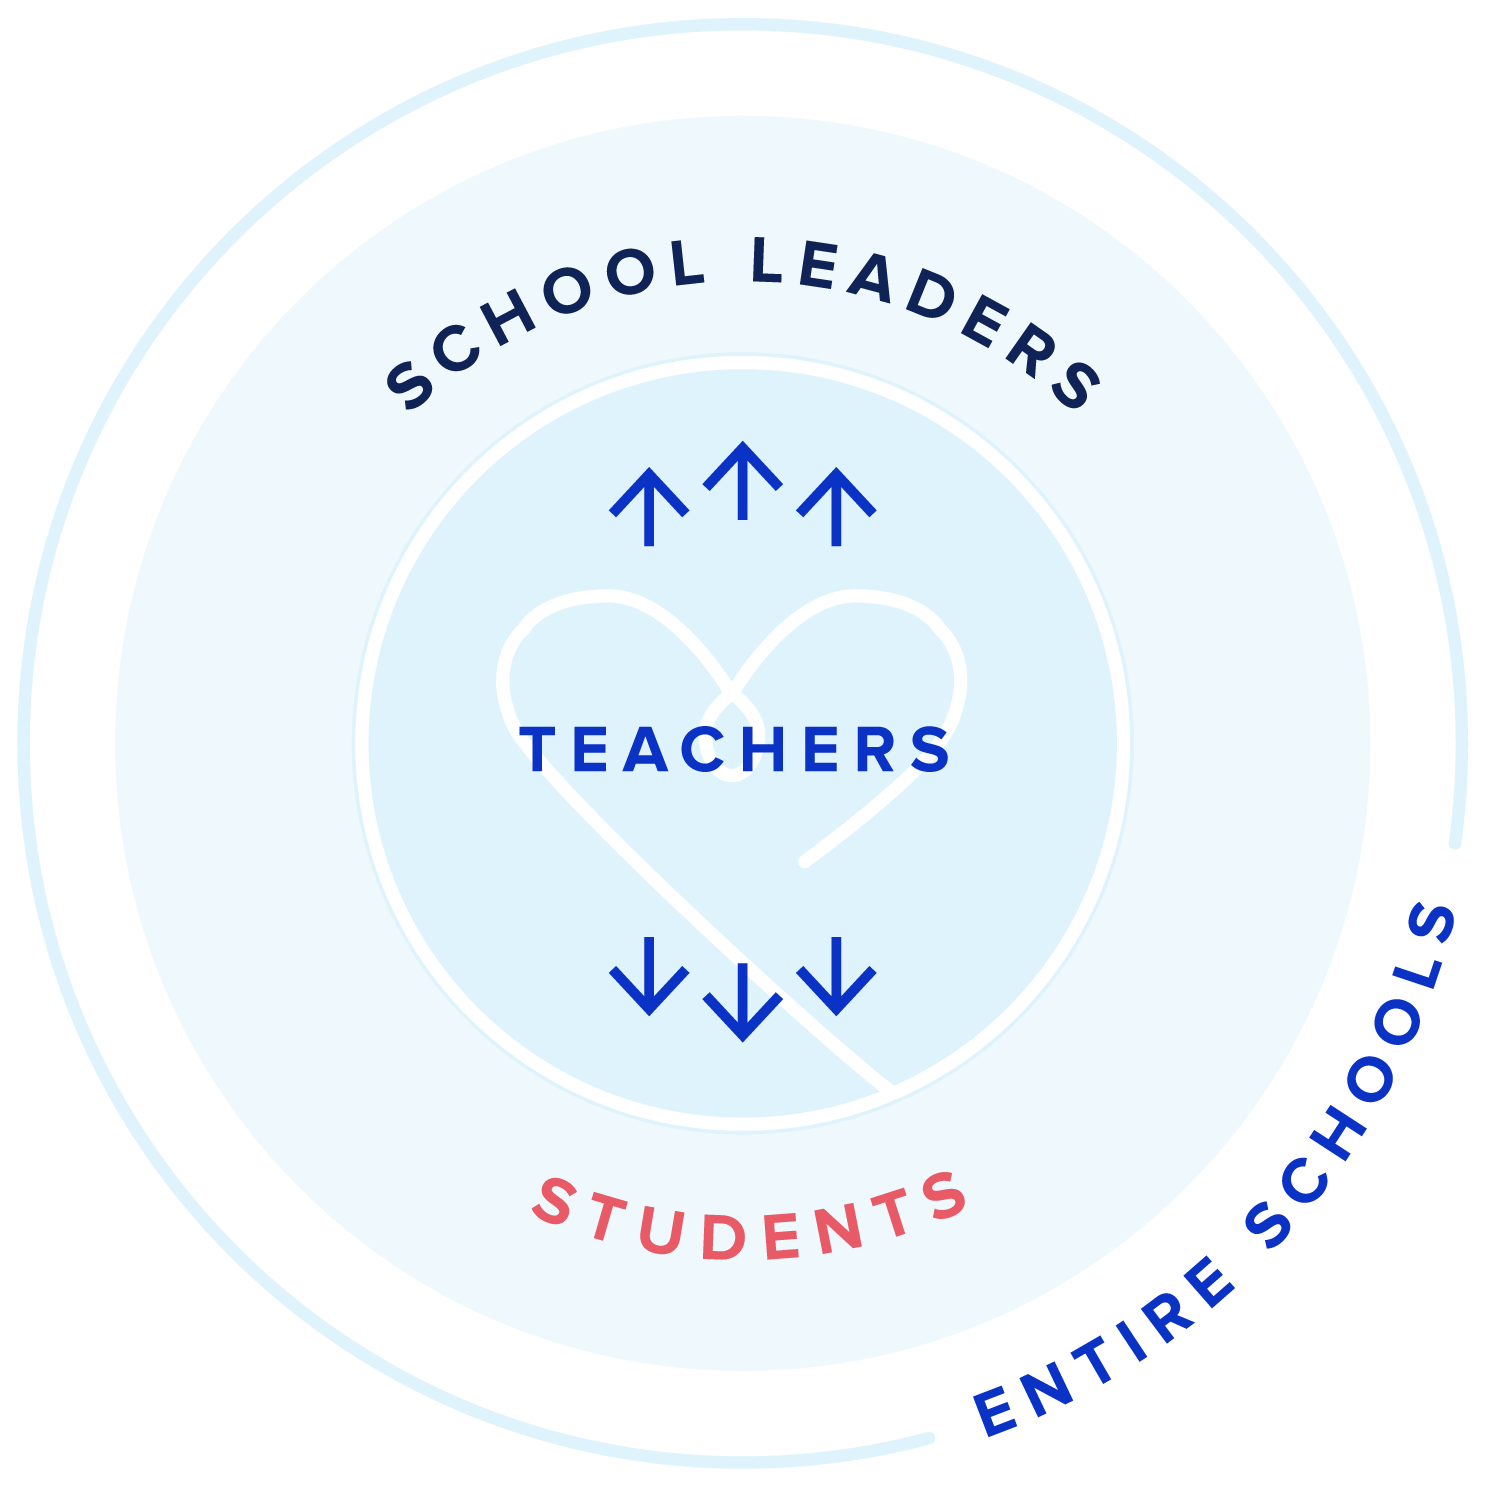 Graydin_Coaching_Courses_Schools_Educators_Teachers_Leaders_Administrators_Beginner_London_Toronto_NewYork_SchoolImpactDiagram-06-06-06.png